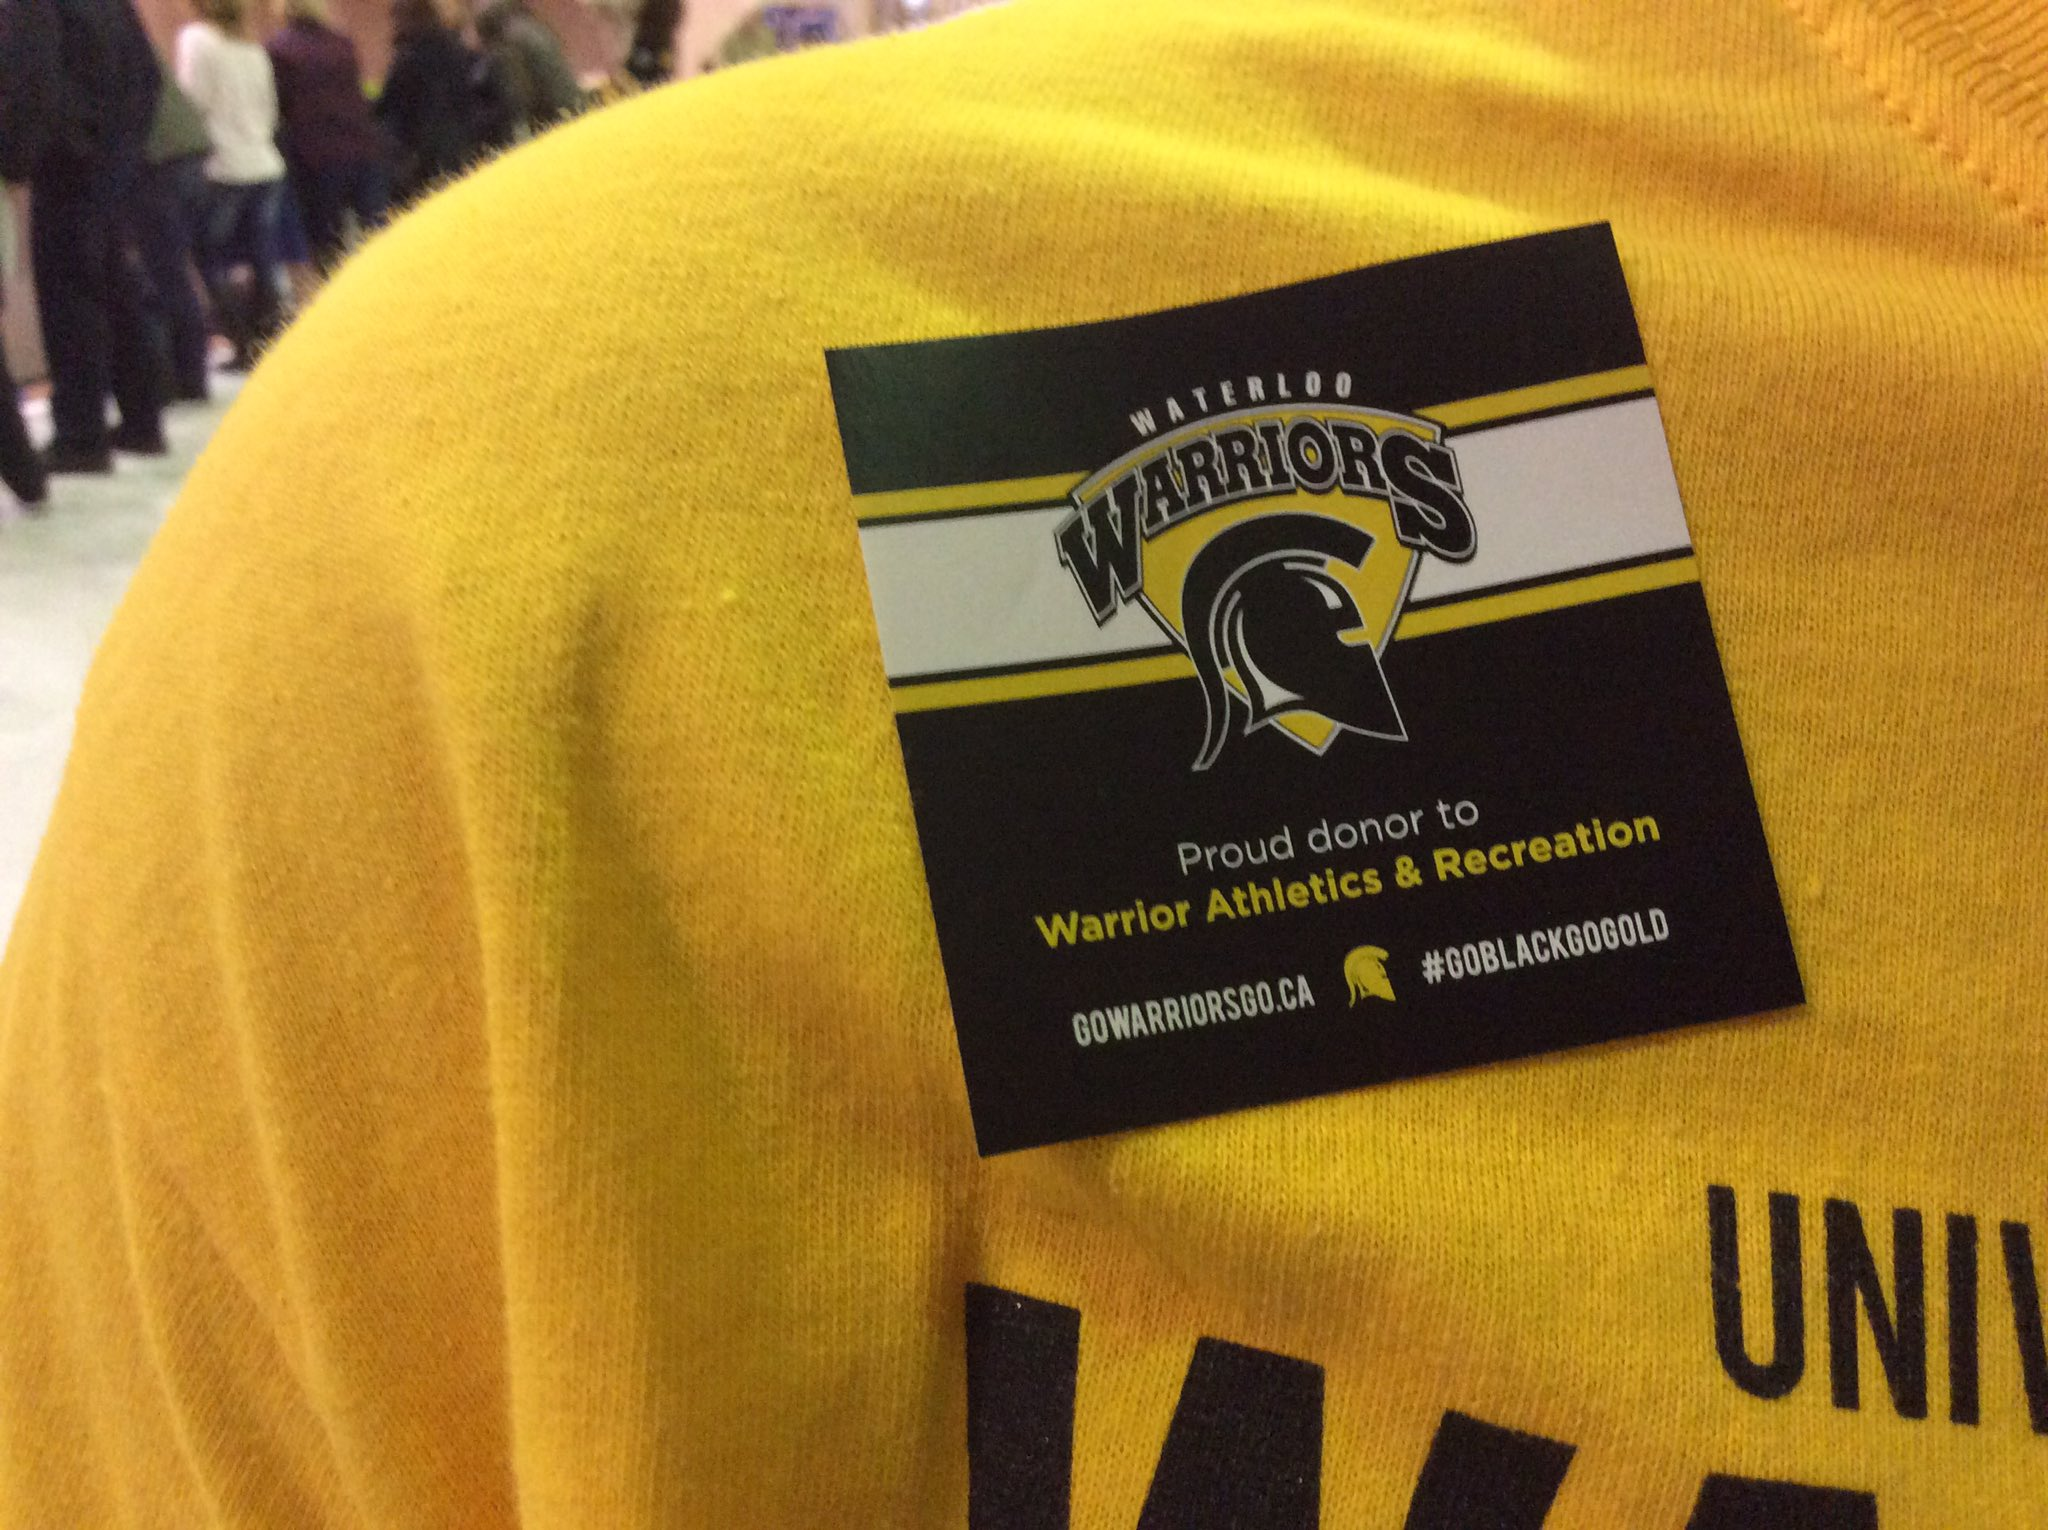 A special thanks to all the donors to @WlooWarriors. You are making excellence happen. #UWaterlooFAD #supportwaterloo https://t.co/epqzDJbCuJ